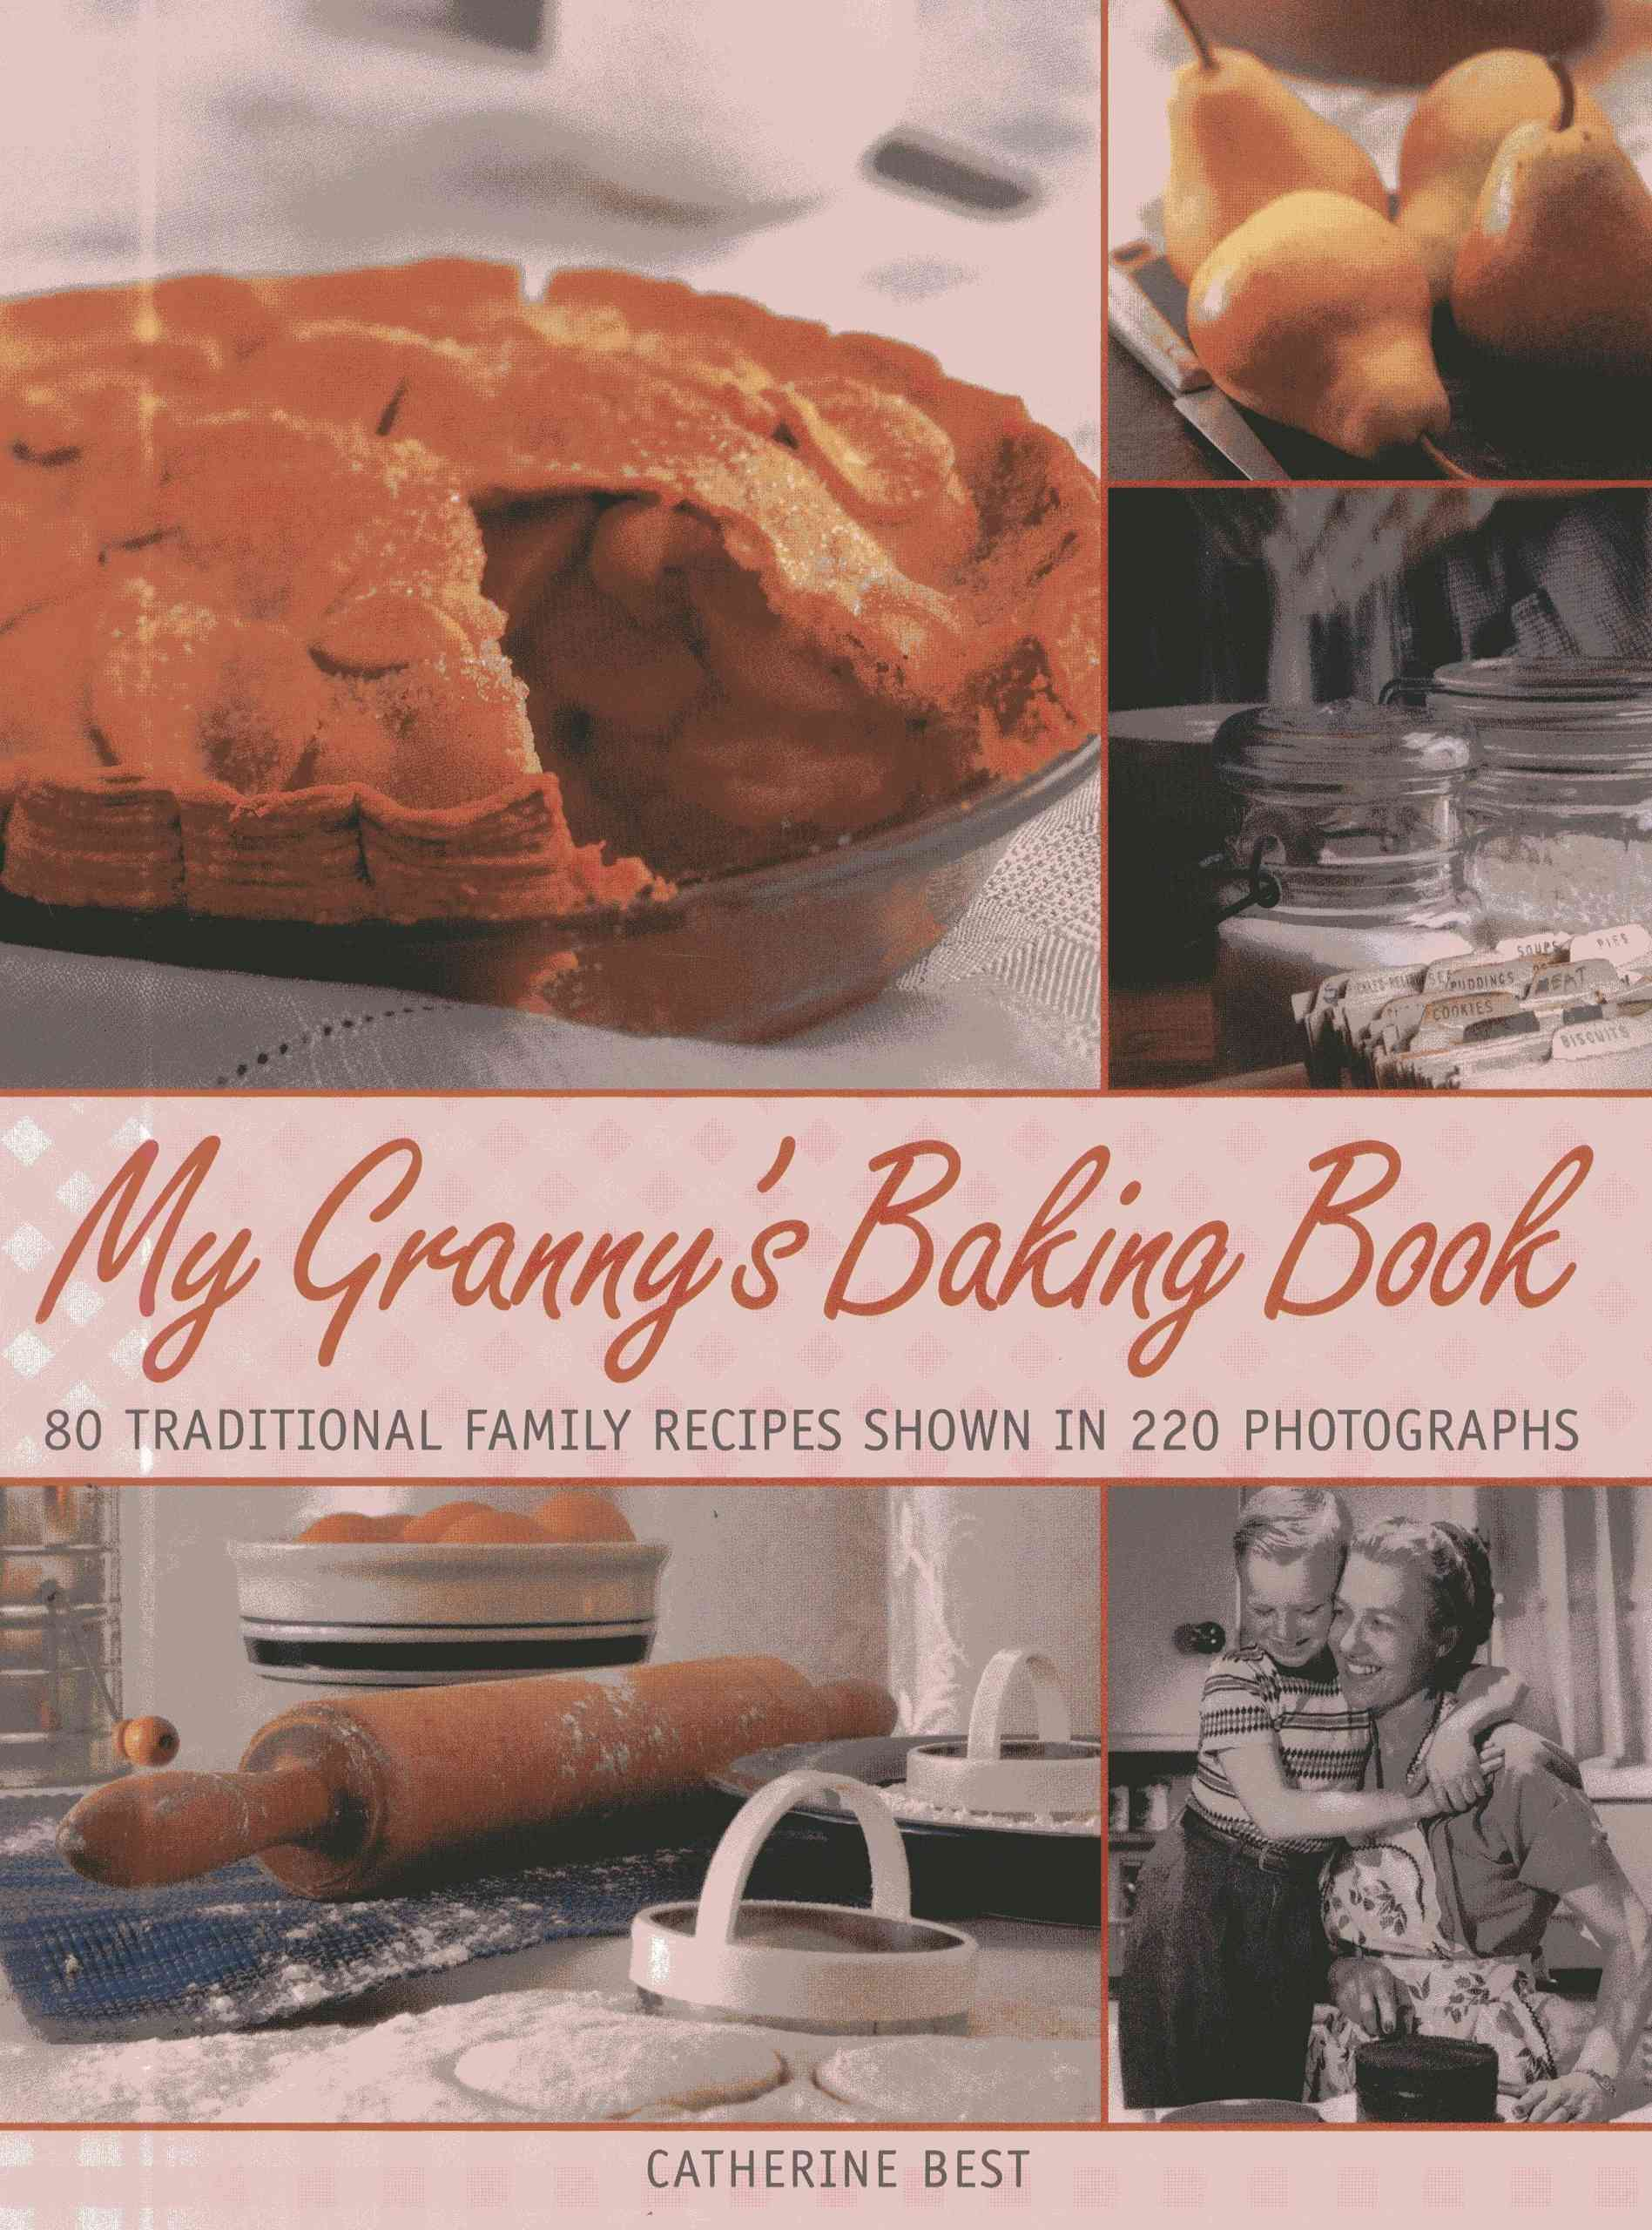 My Granny's Baking Book: 80 Traditional Family Recipes, Shown in 220 Photographs (Paperback)